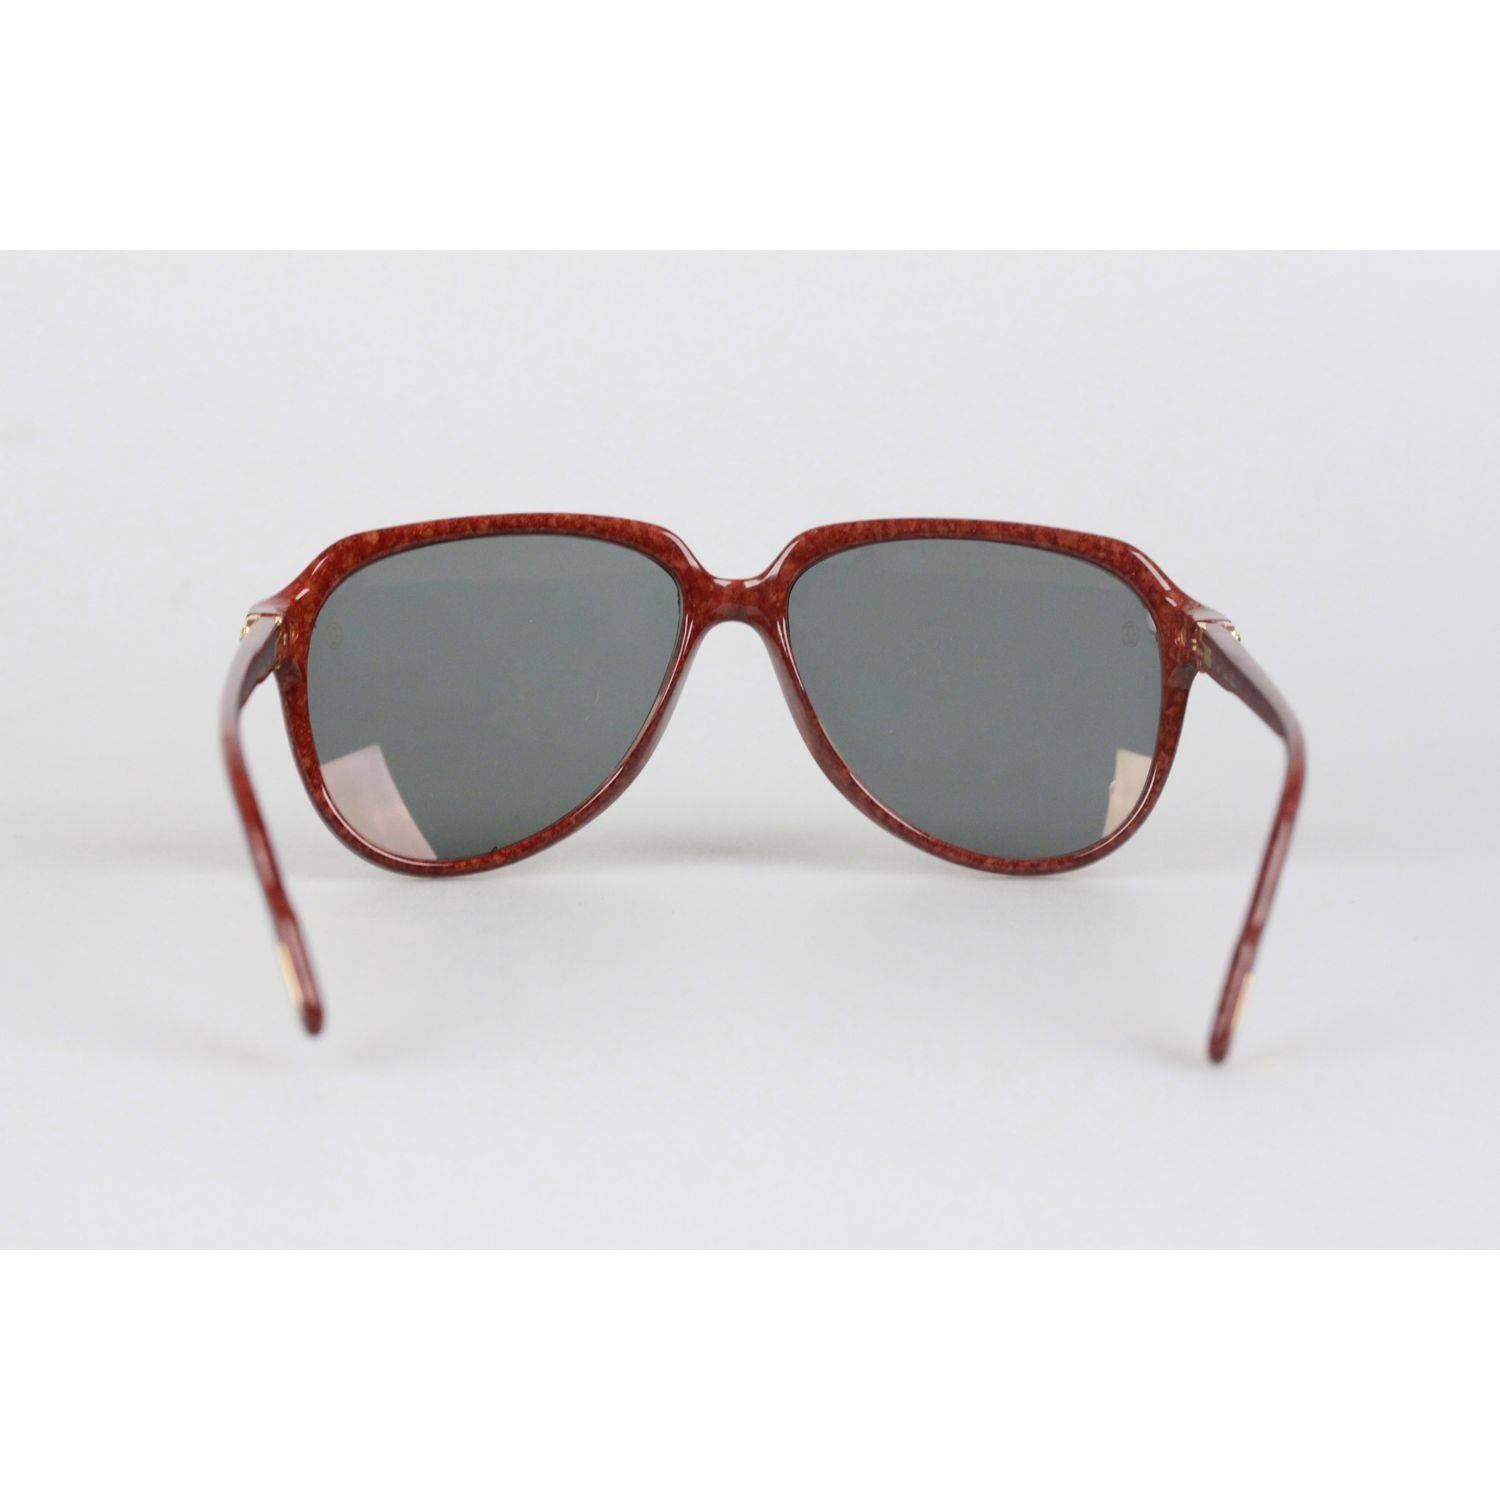 3ad2900fc5 CARTIER Paris VITESSE 1991 Rare Gold Brown Sunglasses 60-15 140 NOS For  Sale at 1stdibs